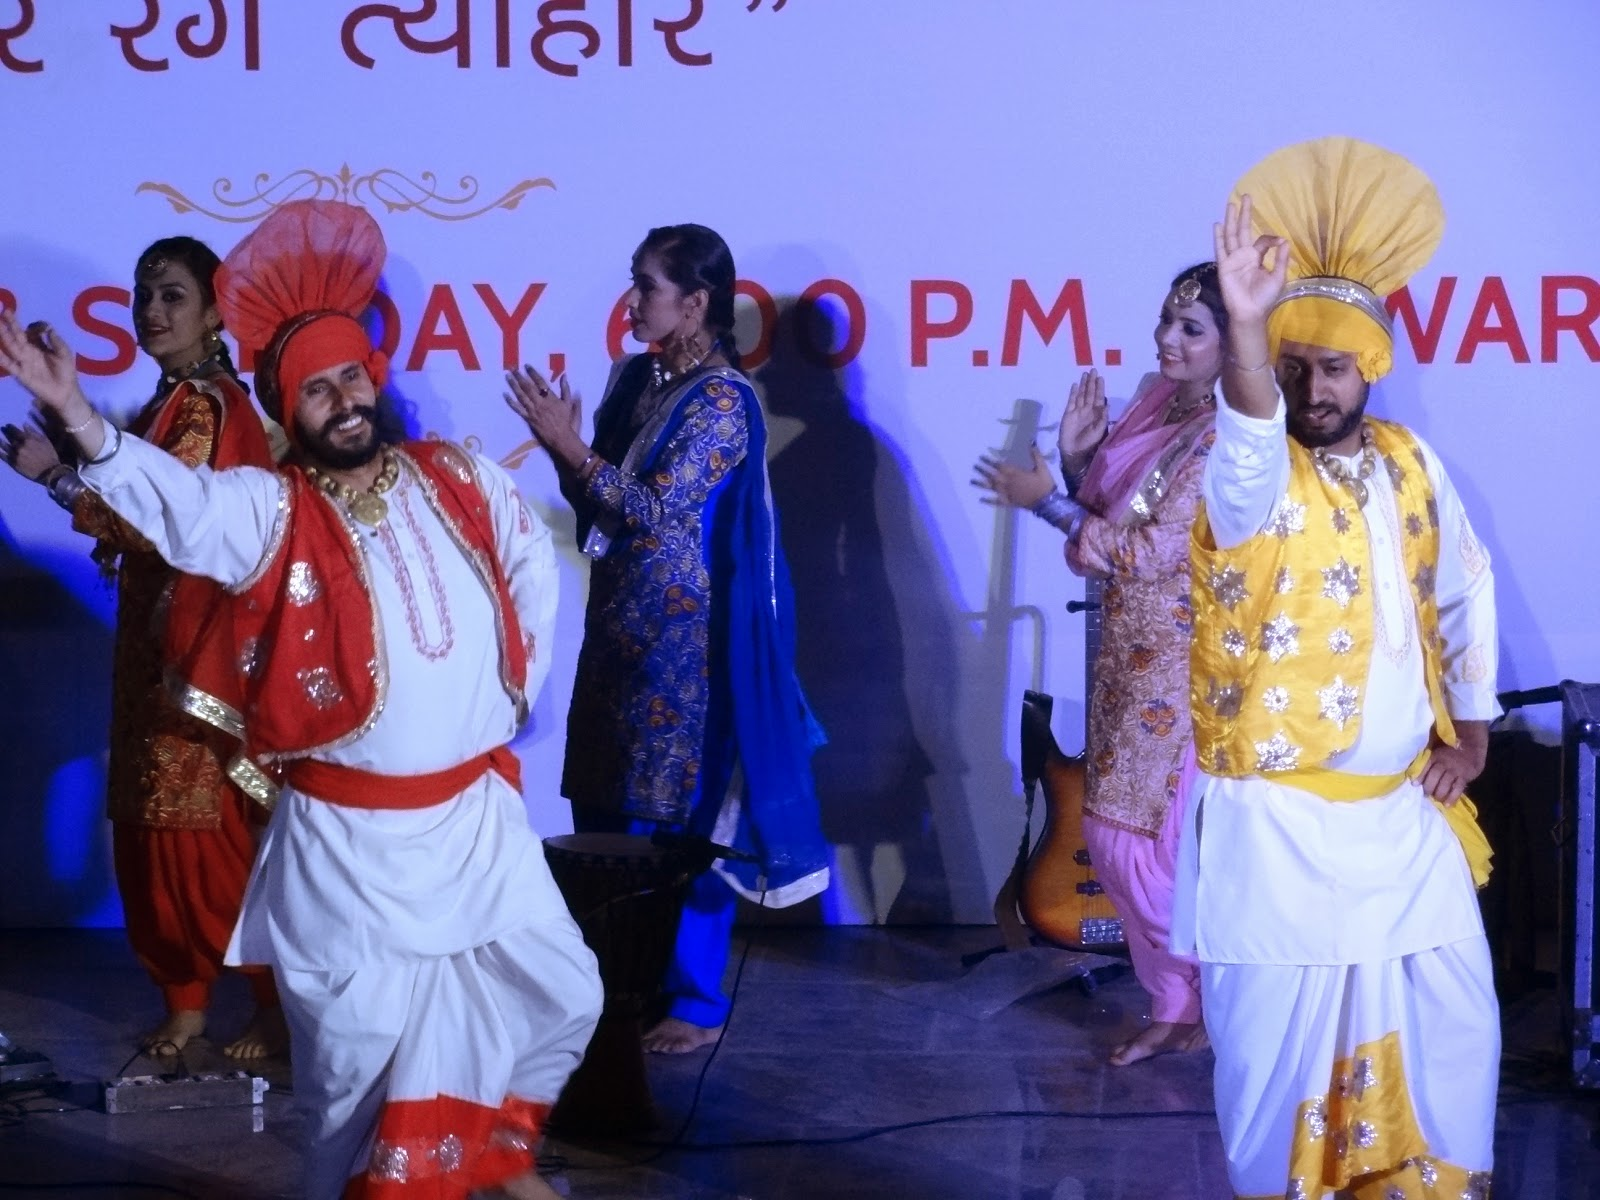 Punjabi Bhangara and Gidda: Glorious performance by artist